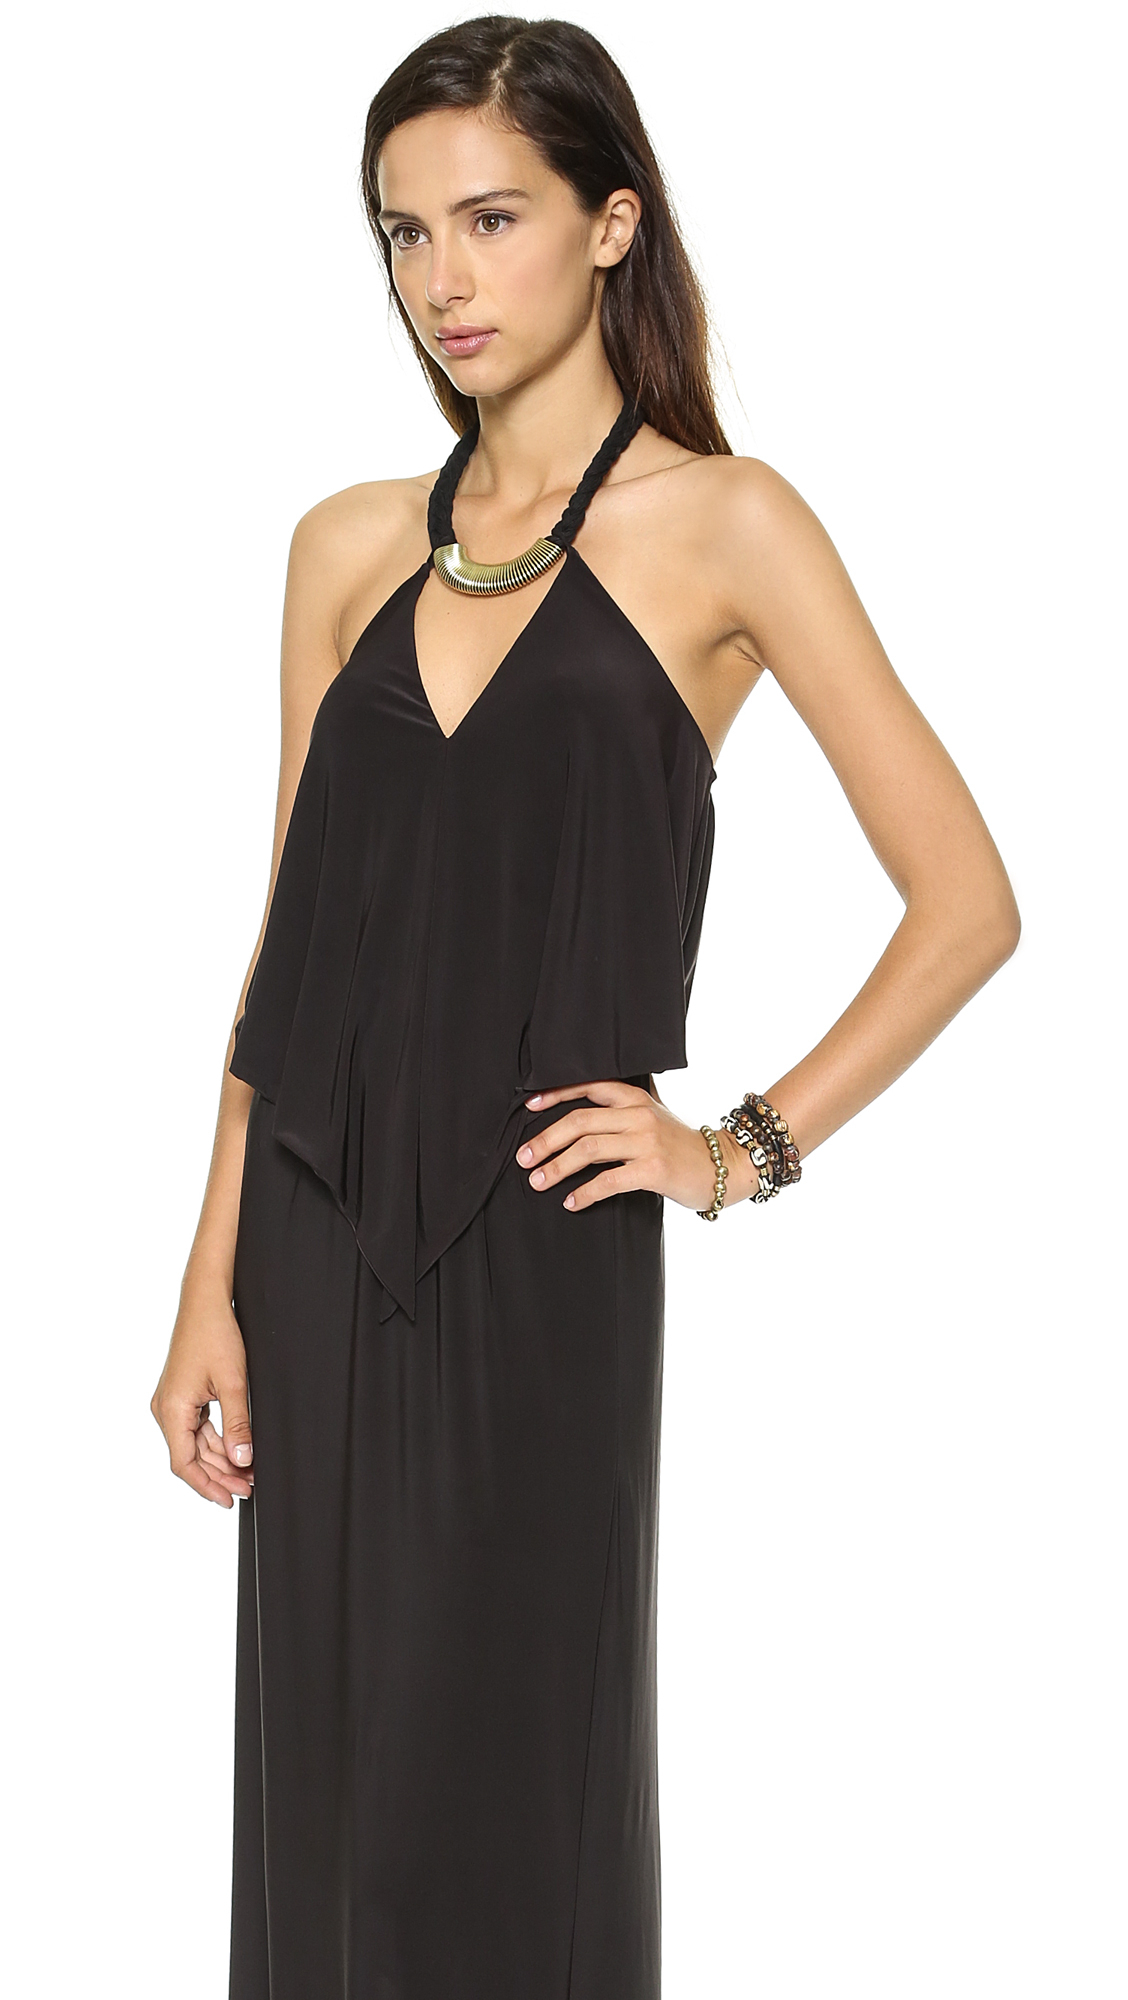 T-bags Convertible Maxi Dress with Necklace